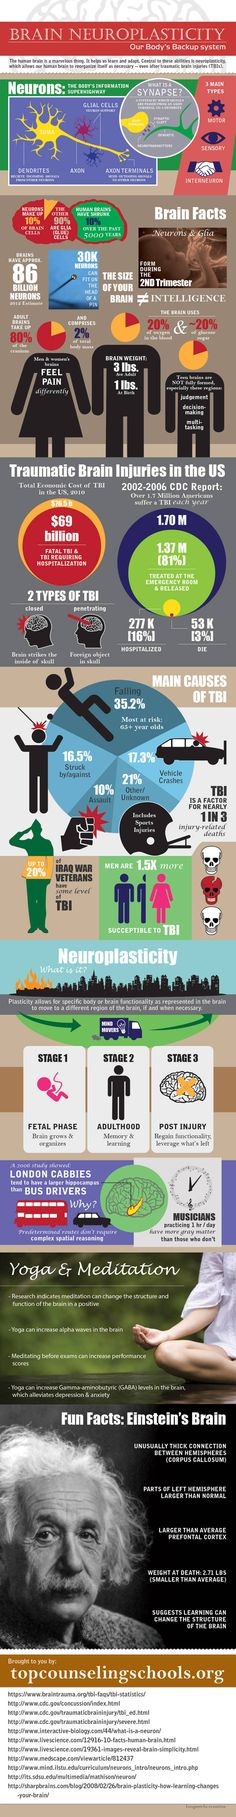 An infographic which presents statistics and other information related to brain neuroplasticity, including information related to meditation.